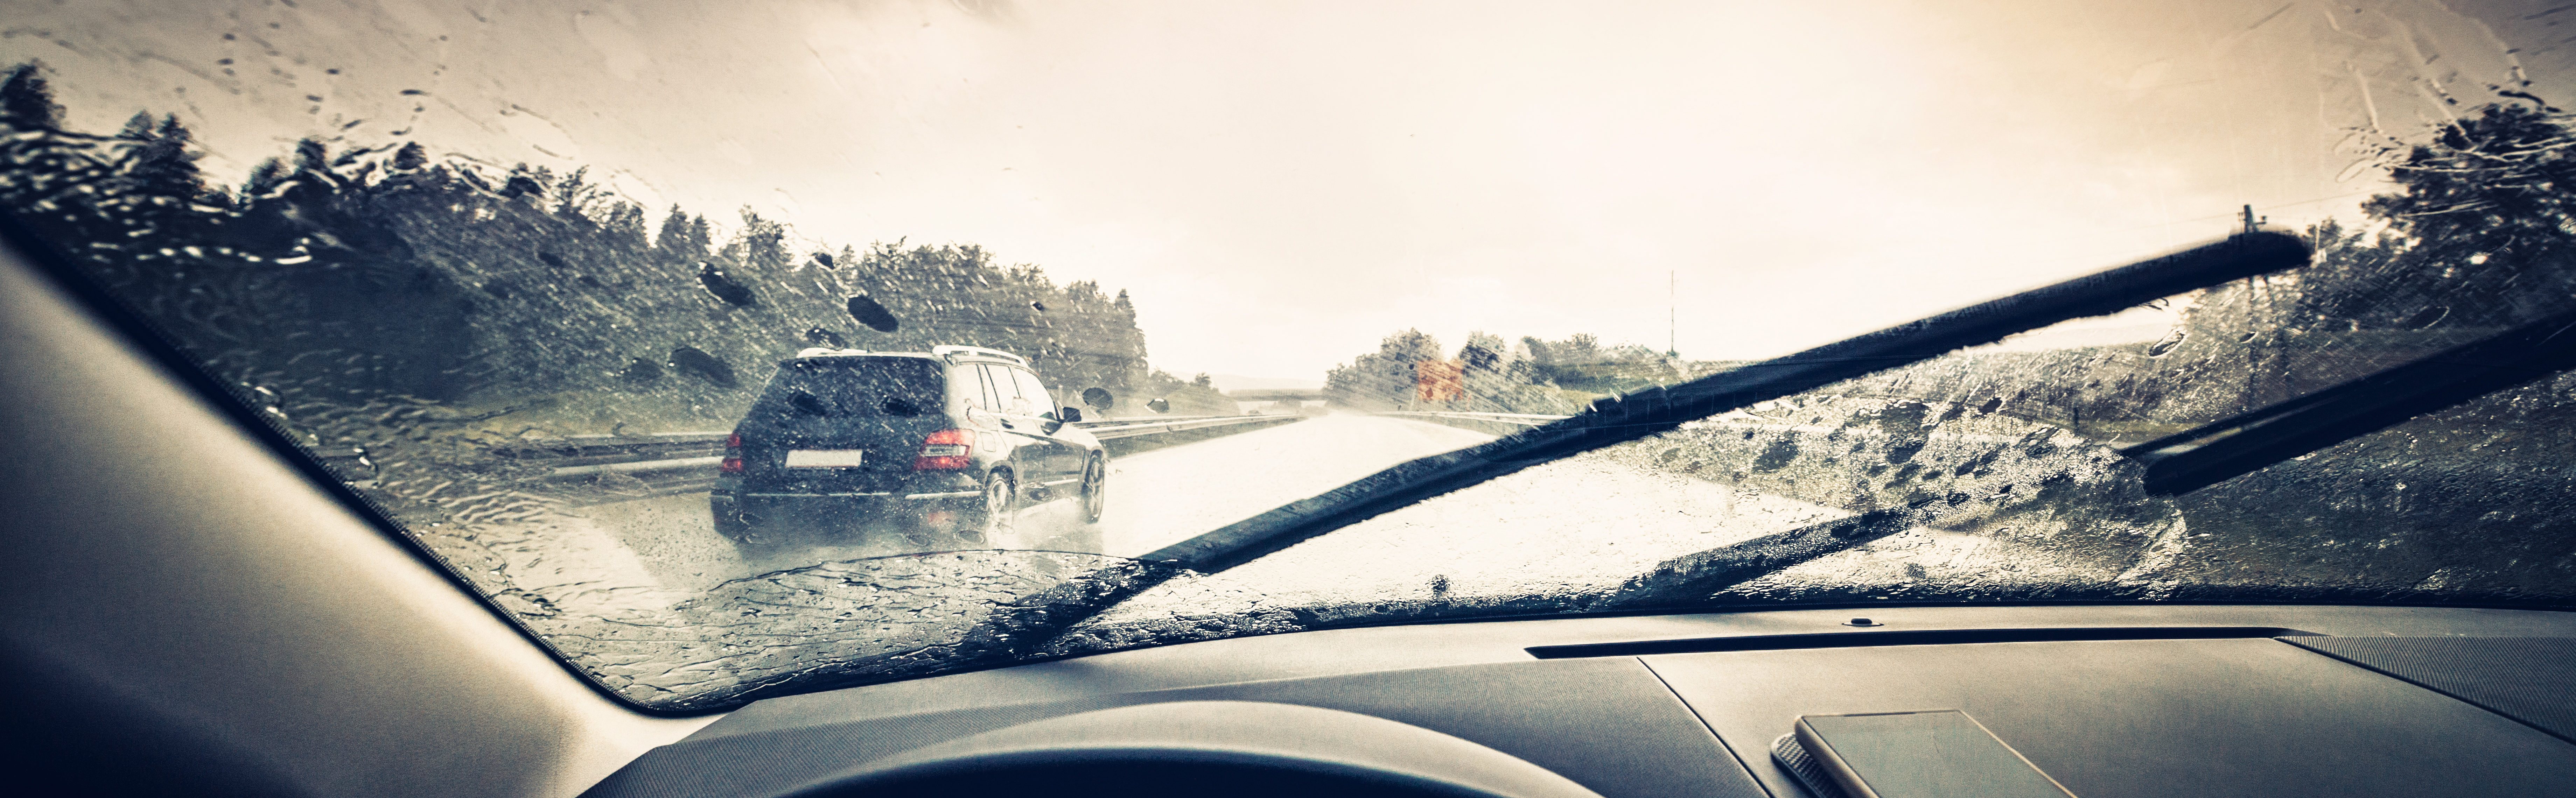 Wiper blade and fluid